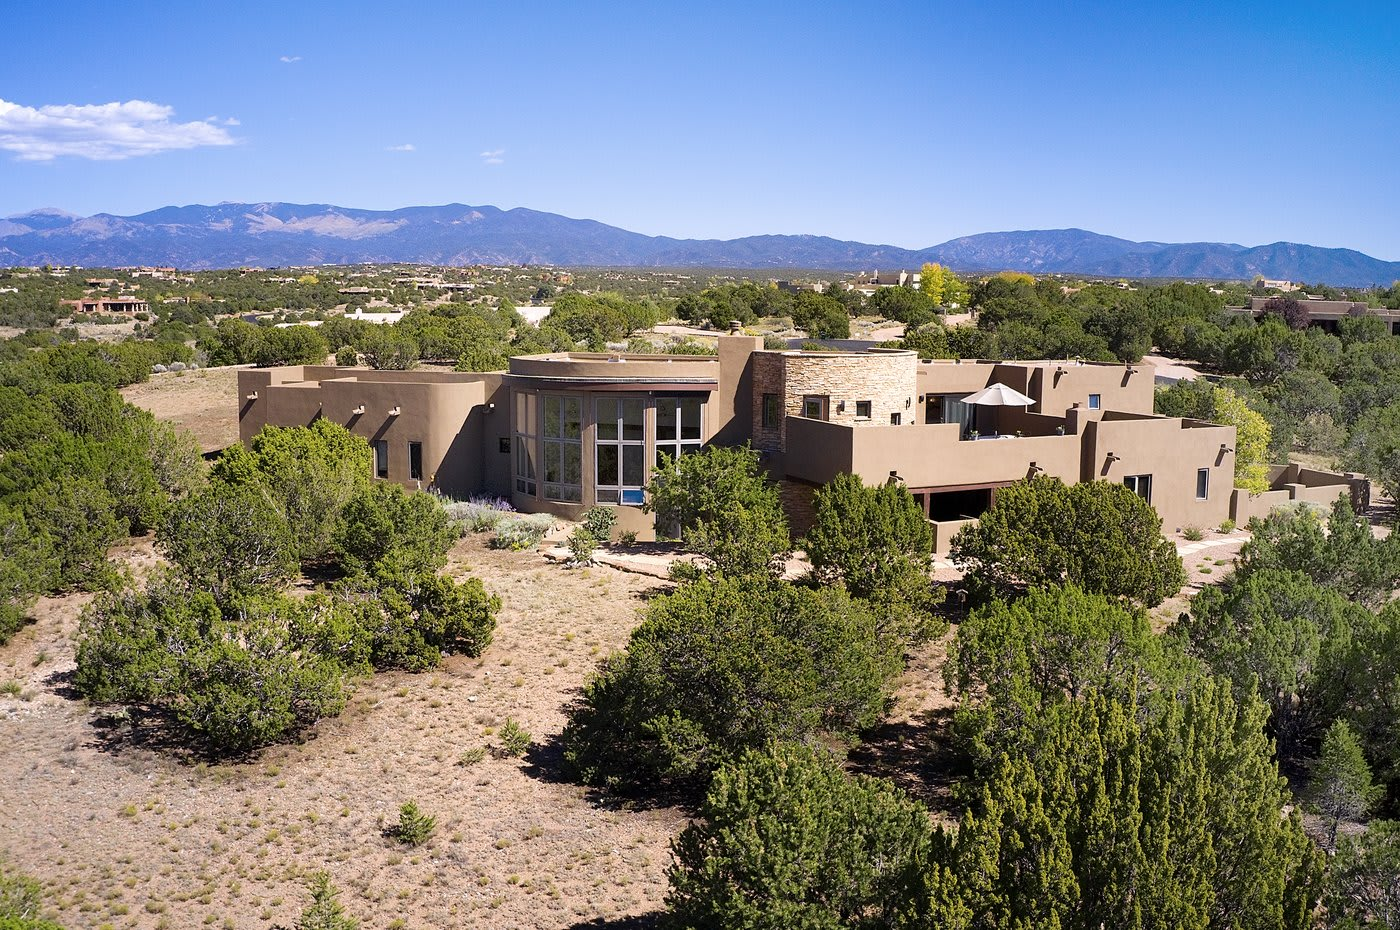 Santa Fe is the #1 Place to Buy Luxury Real Estate—Here's Why